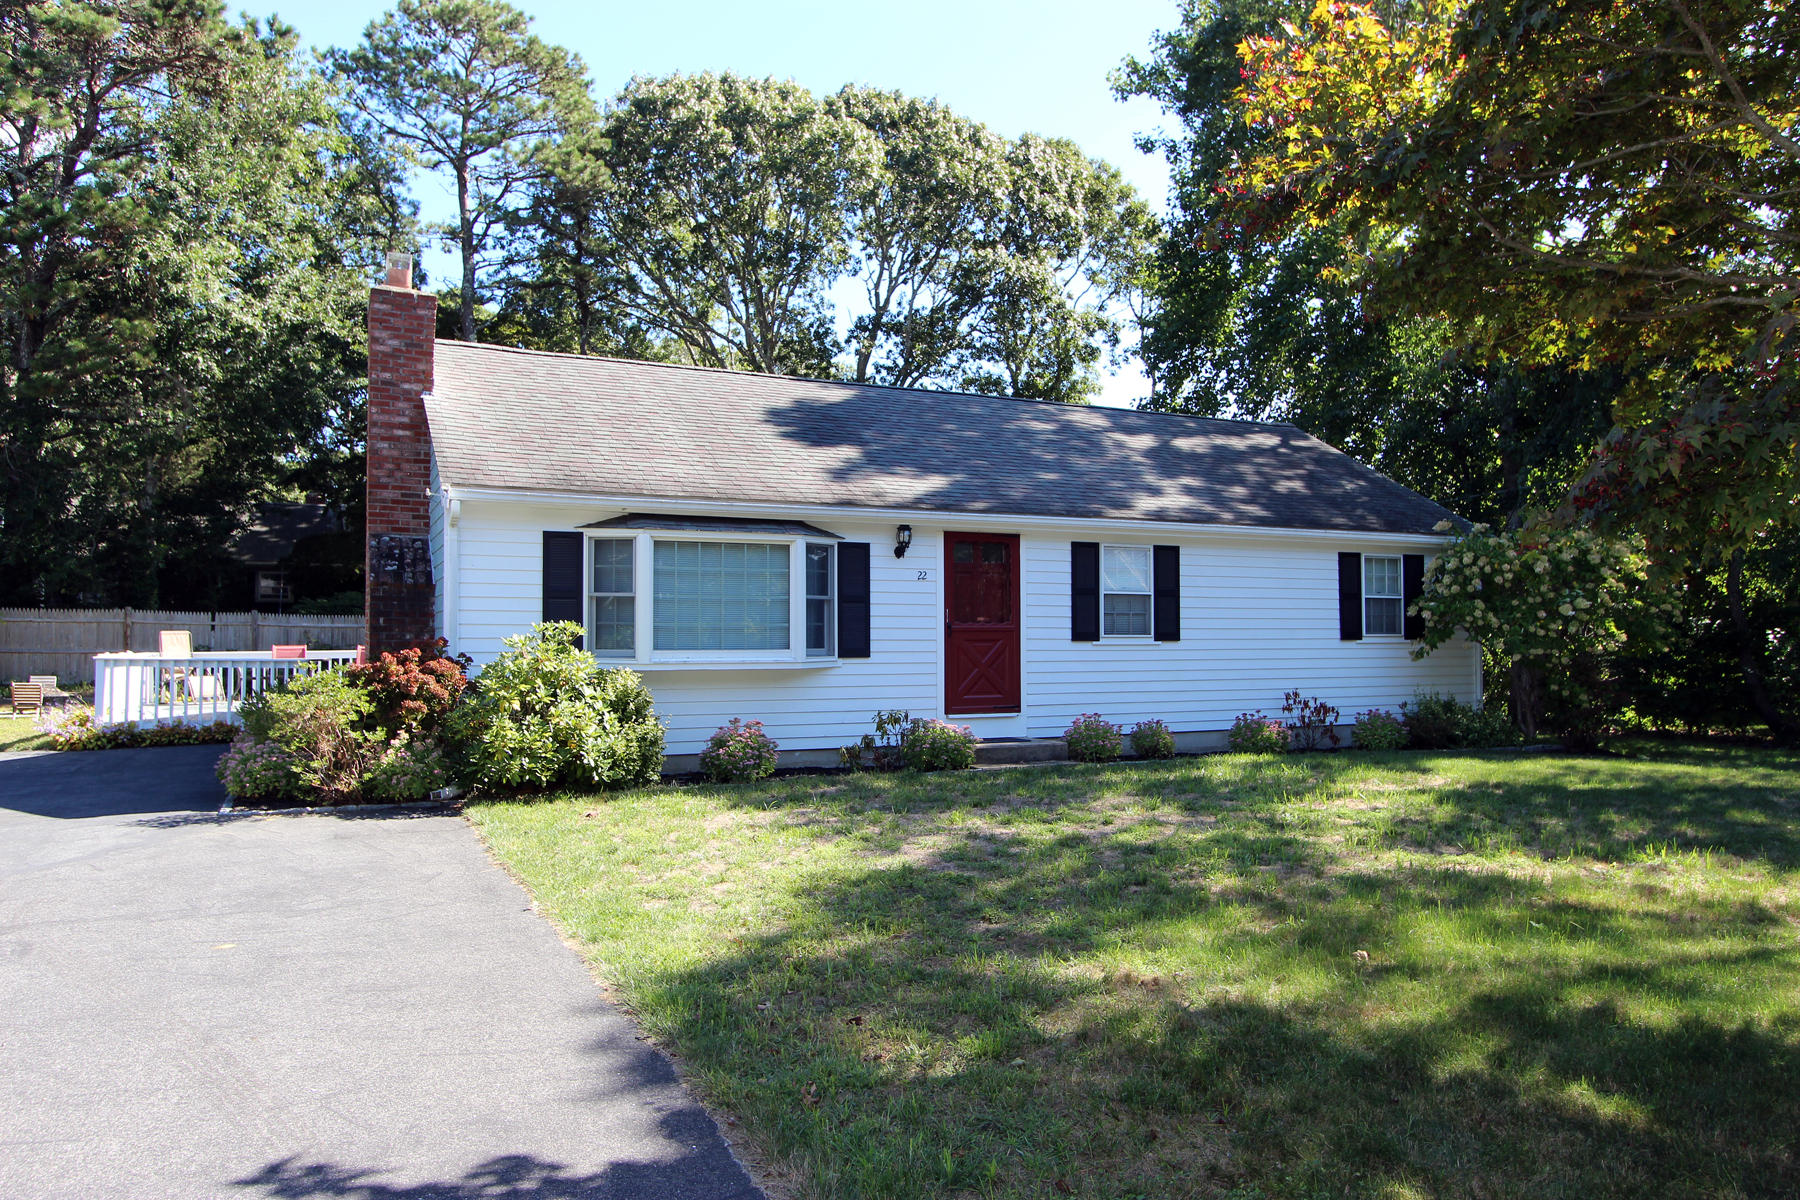 22 Grouse Lane, West Yarmouth MA, 02673 details